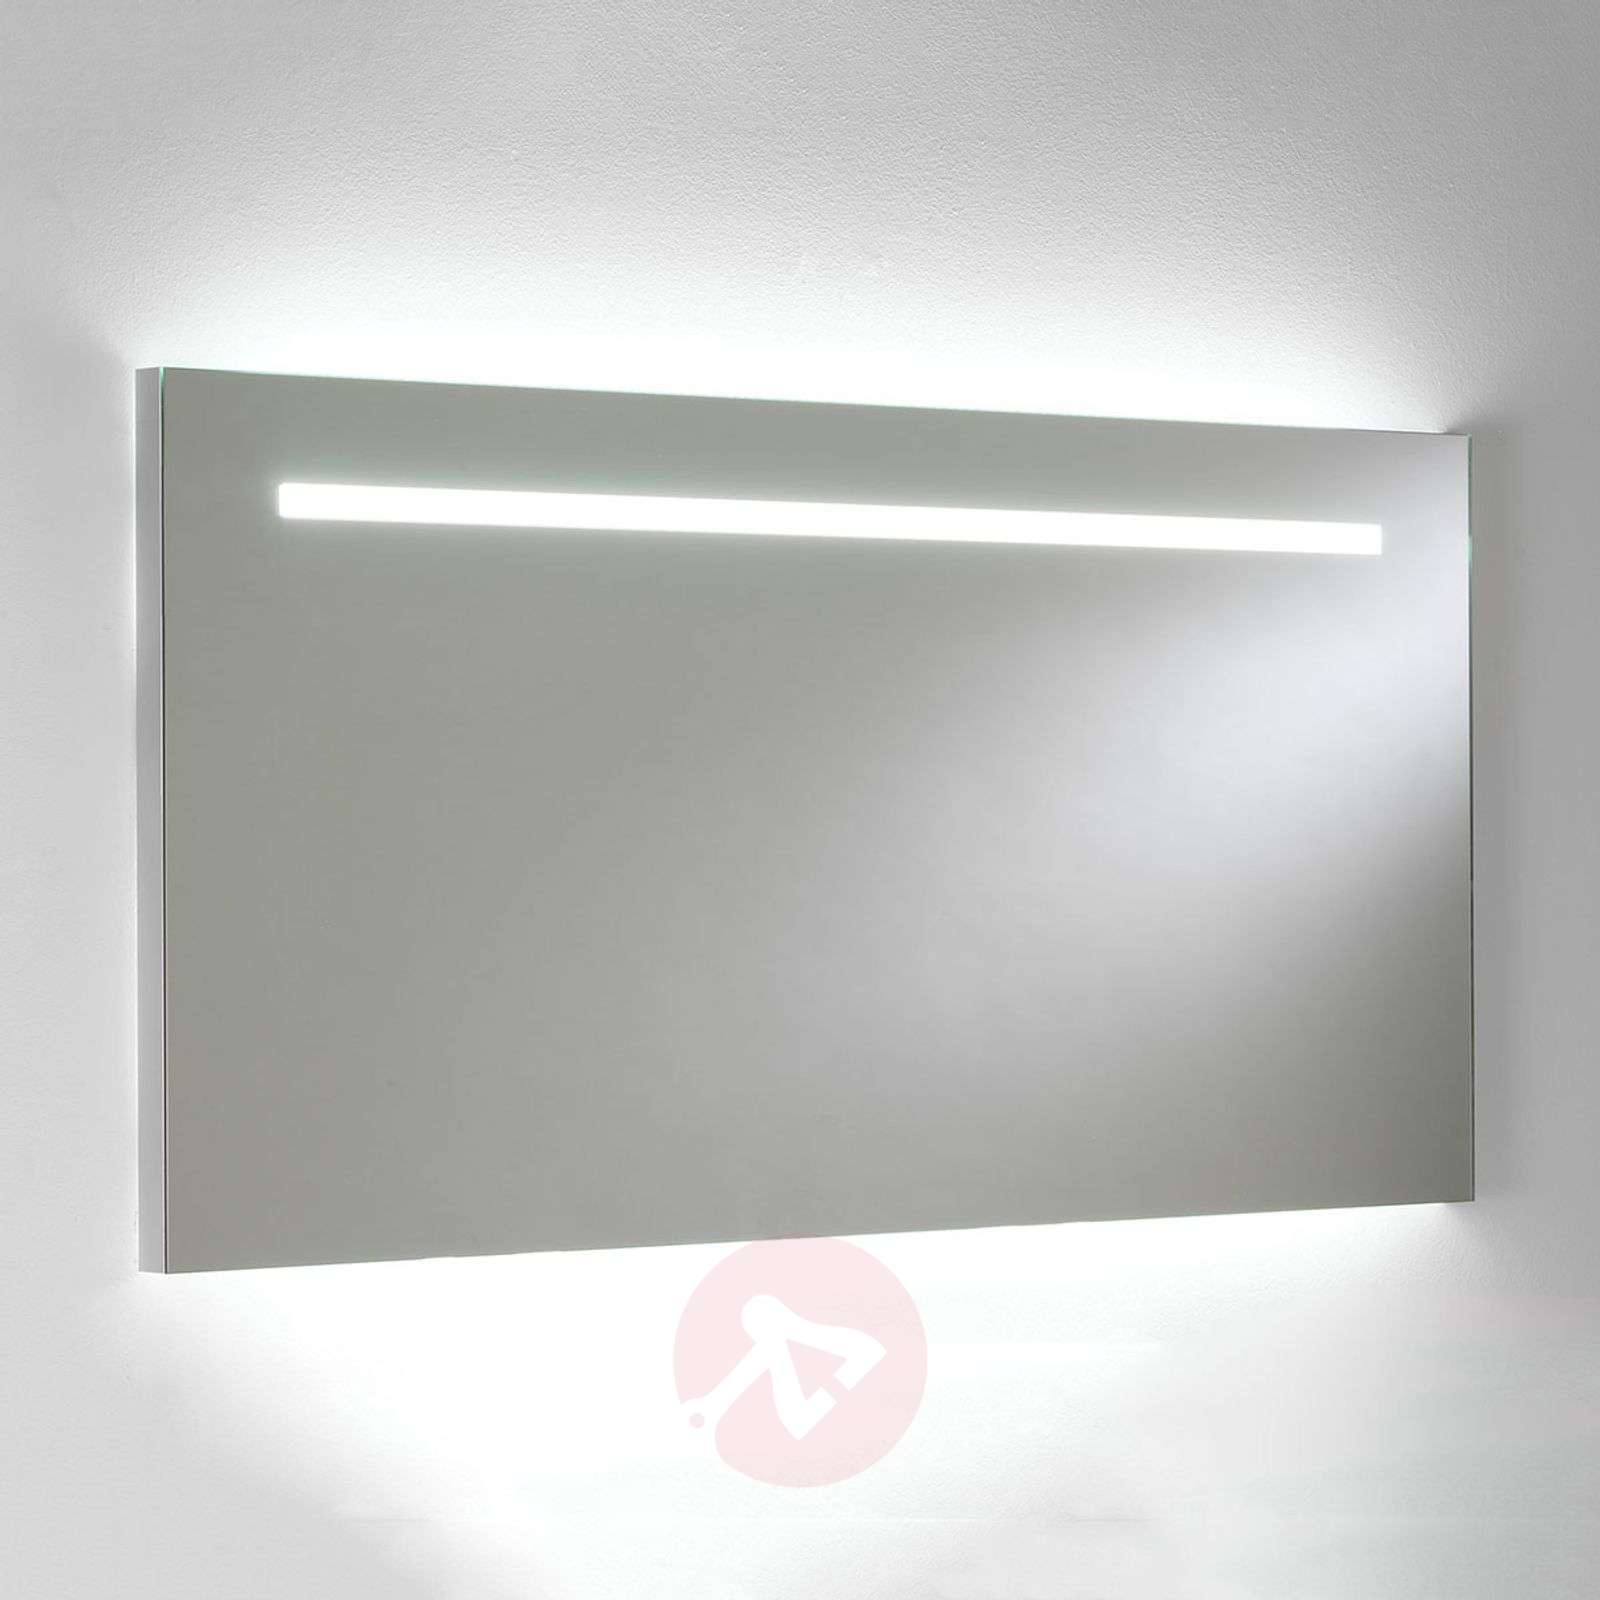 Flair Mirror with Integrated Lighting-1020056-02